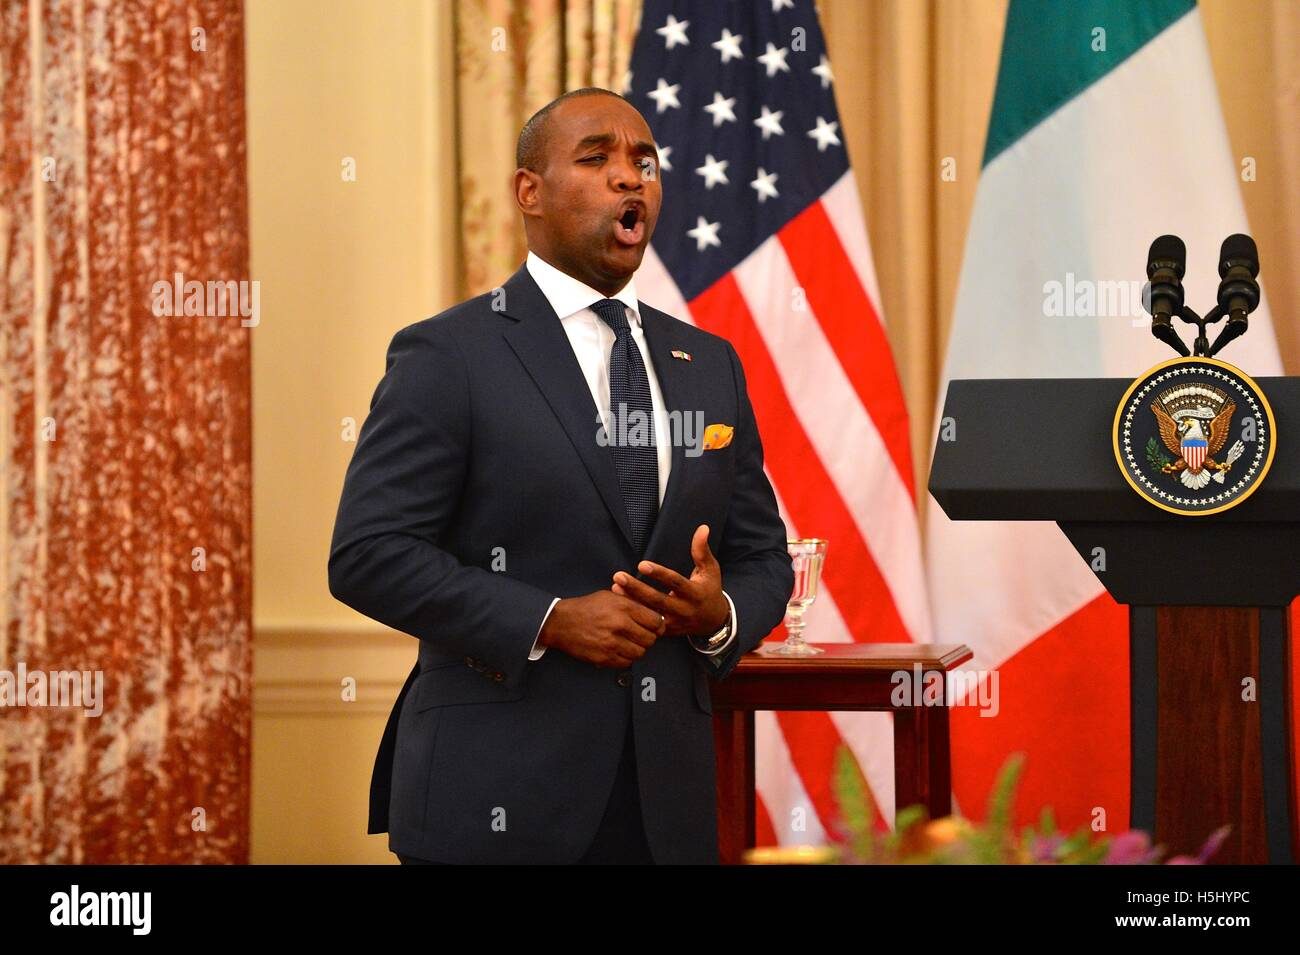 Opera singer Lawrence Brownlee sings at a State Luncheon in honor of Italian Prime Minister Matteo Renzi at the - Stock Image